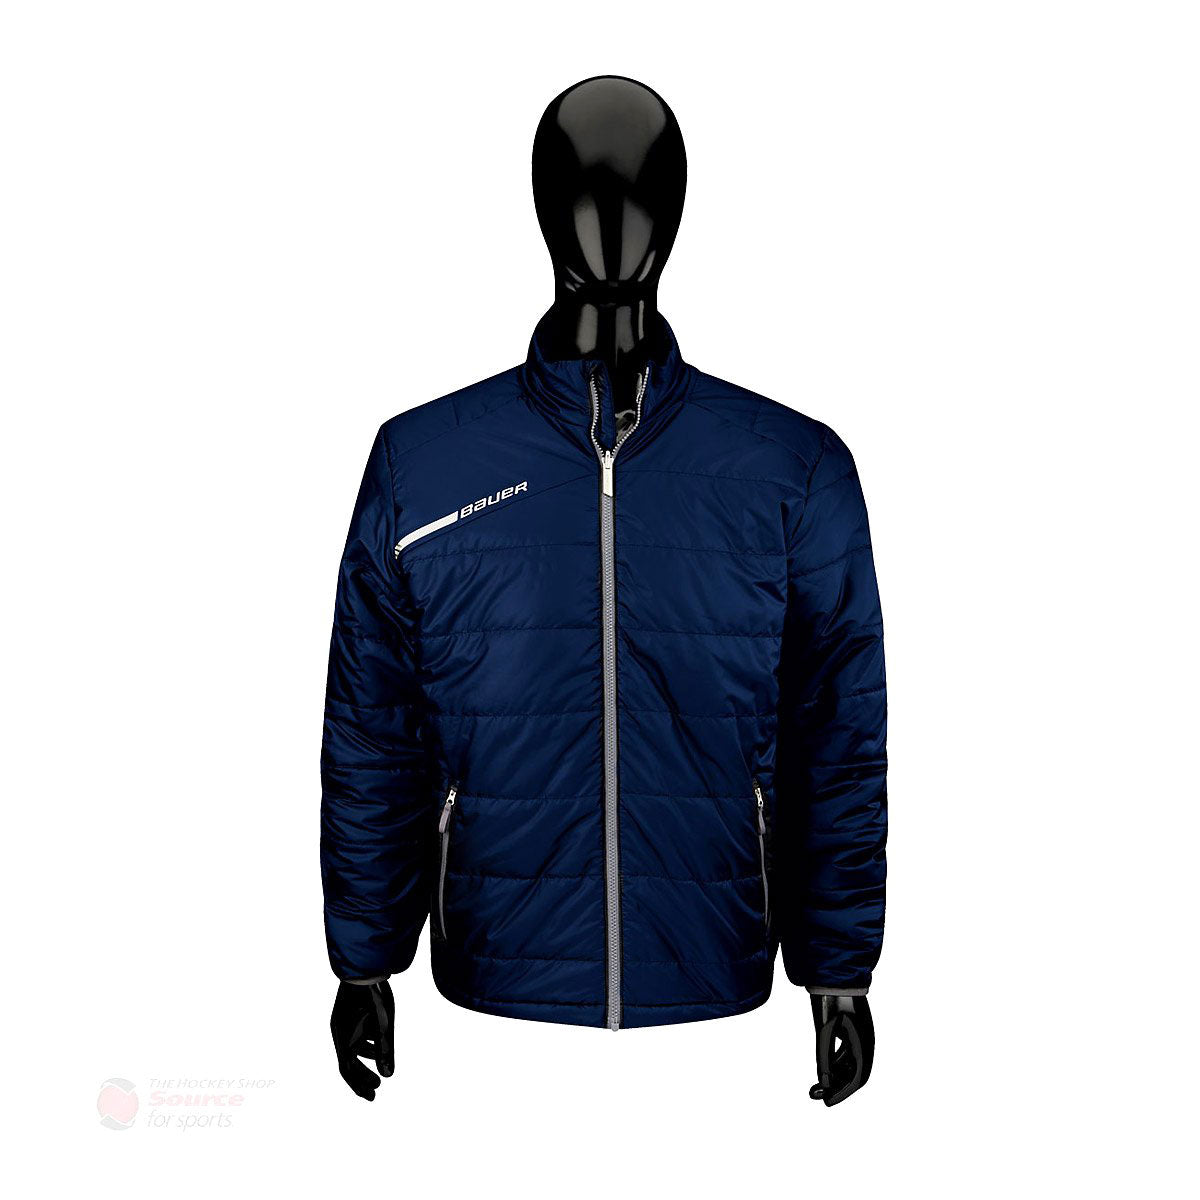 Bauer Flex Bubble Senior Jacket